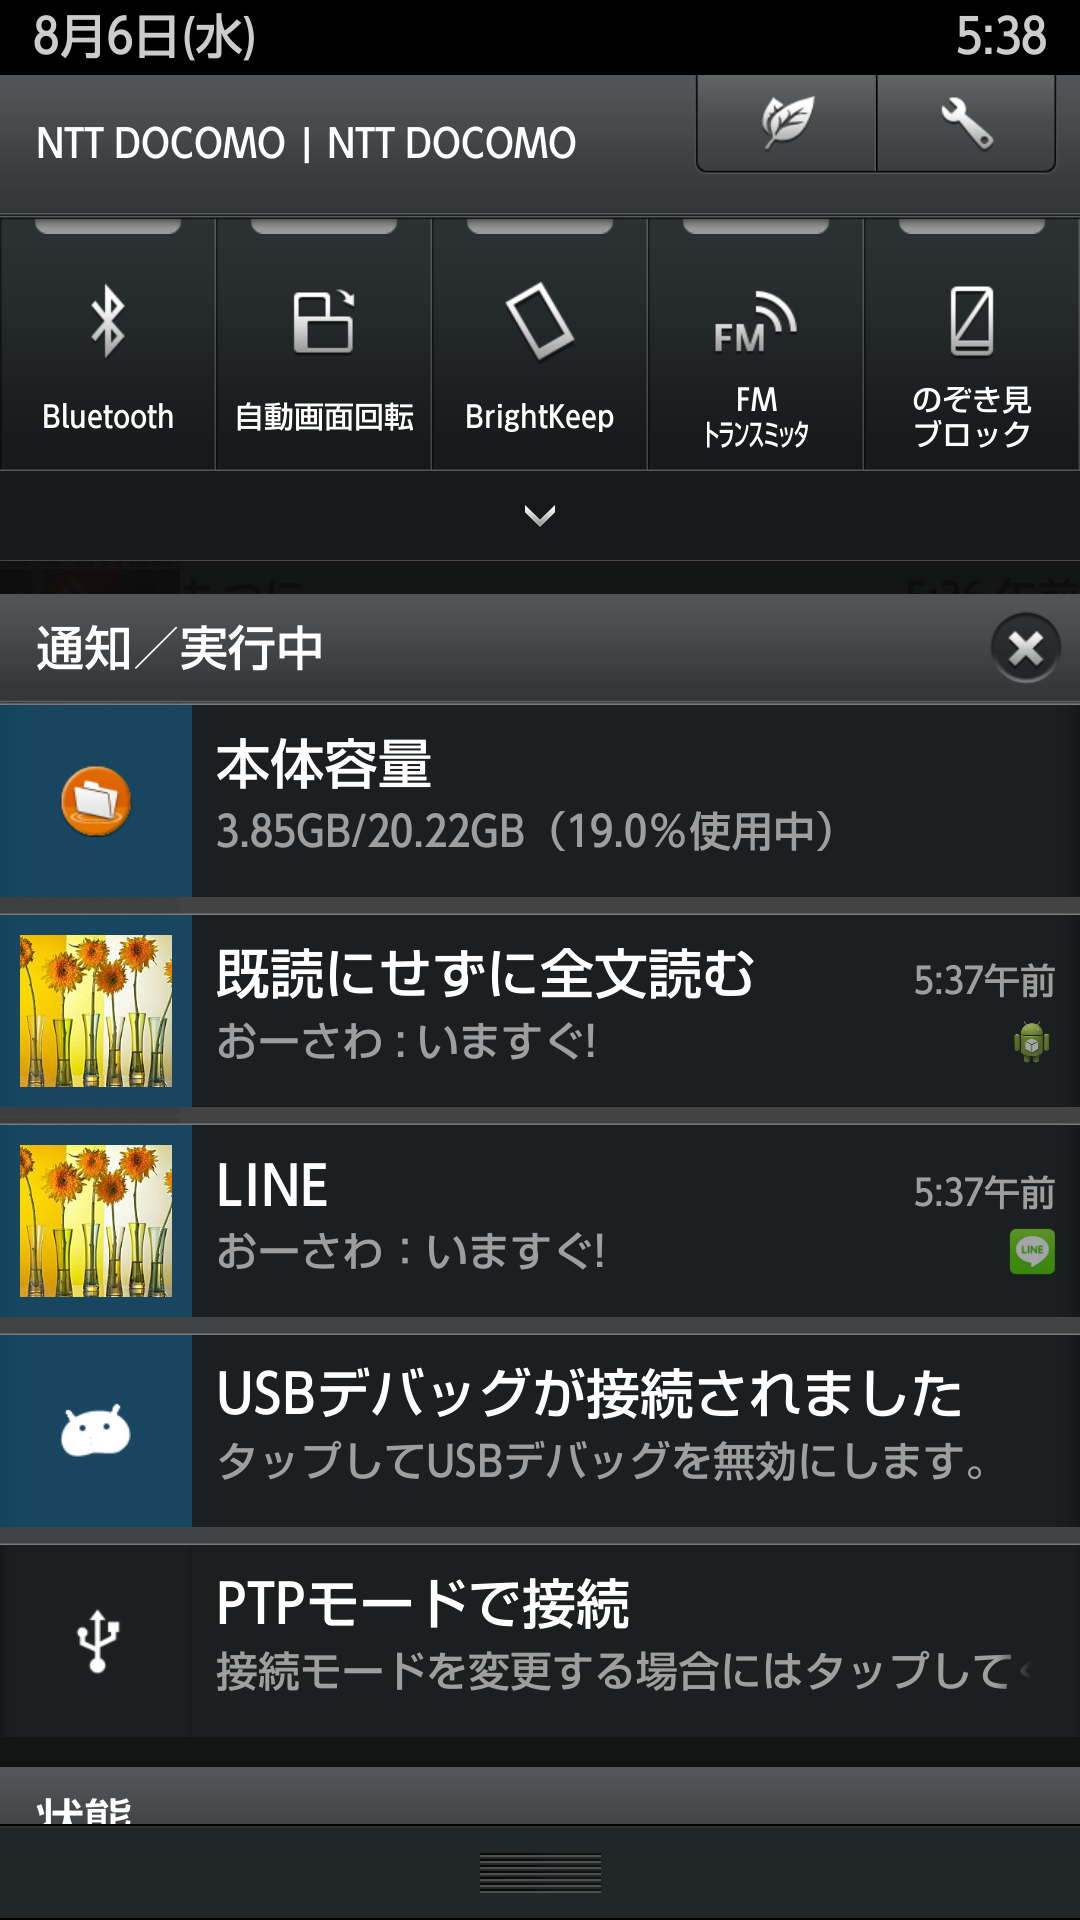 Screenshot_2014-08-06-05-38-33.png